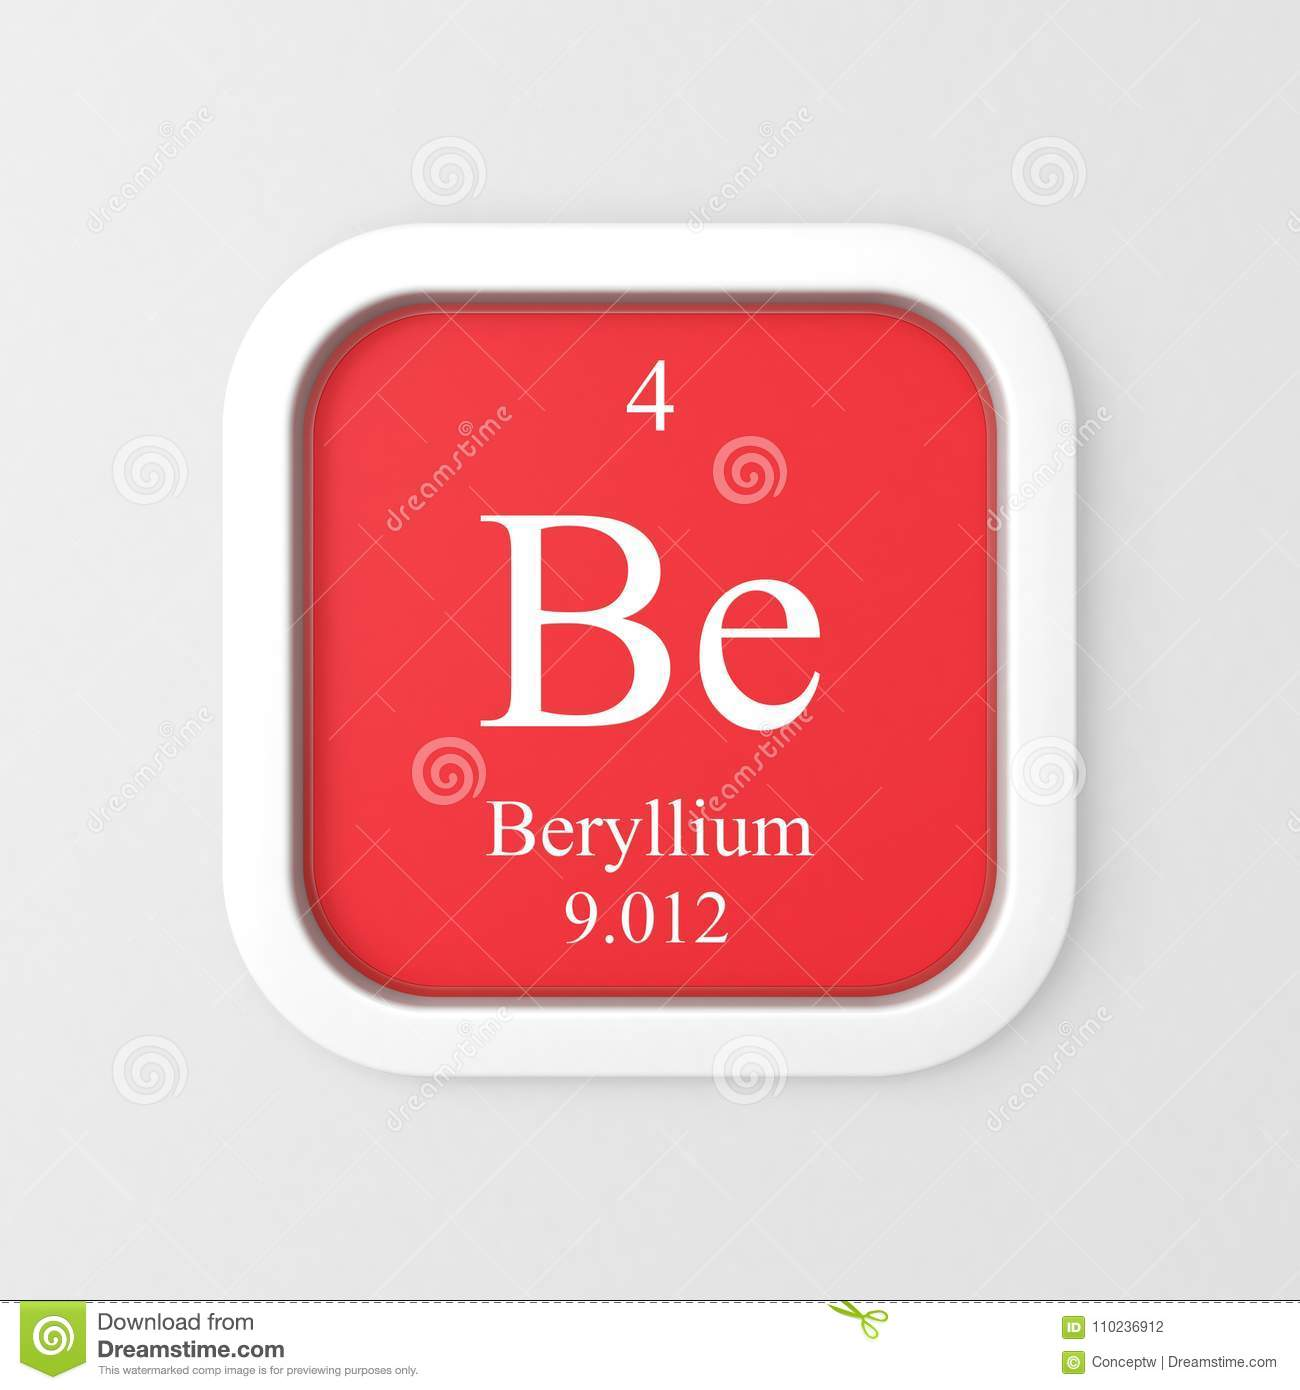 Beryllium Symbol On Red Rounded Square Stock Illustration